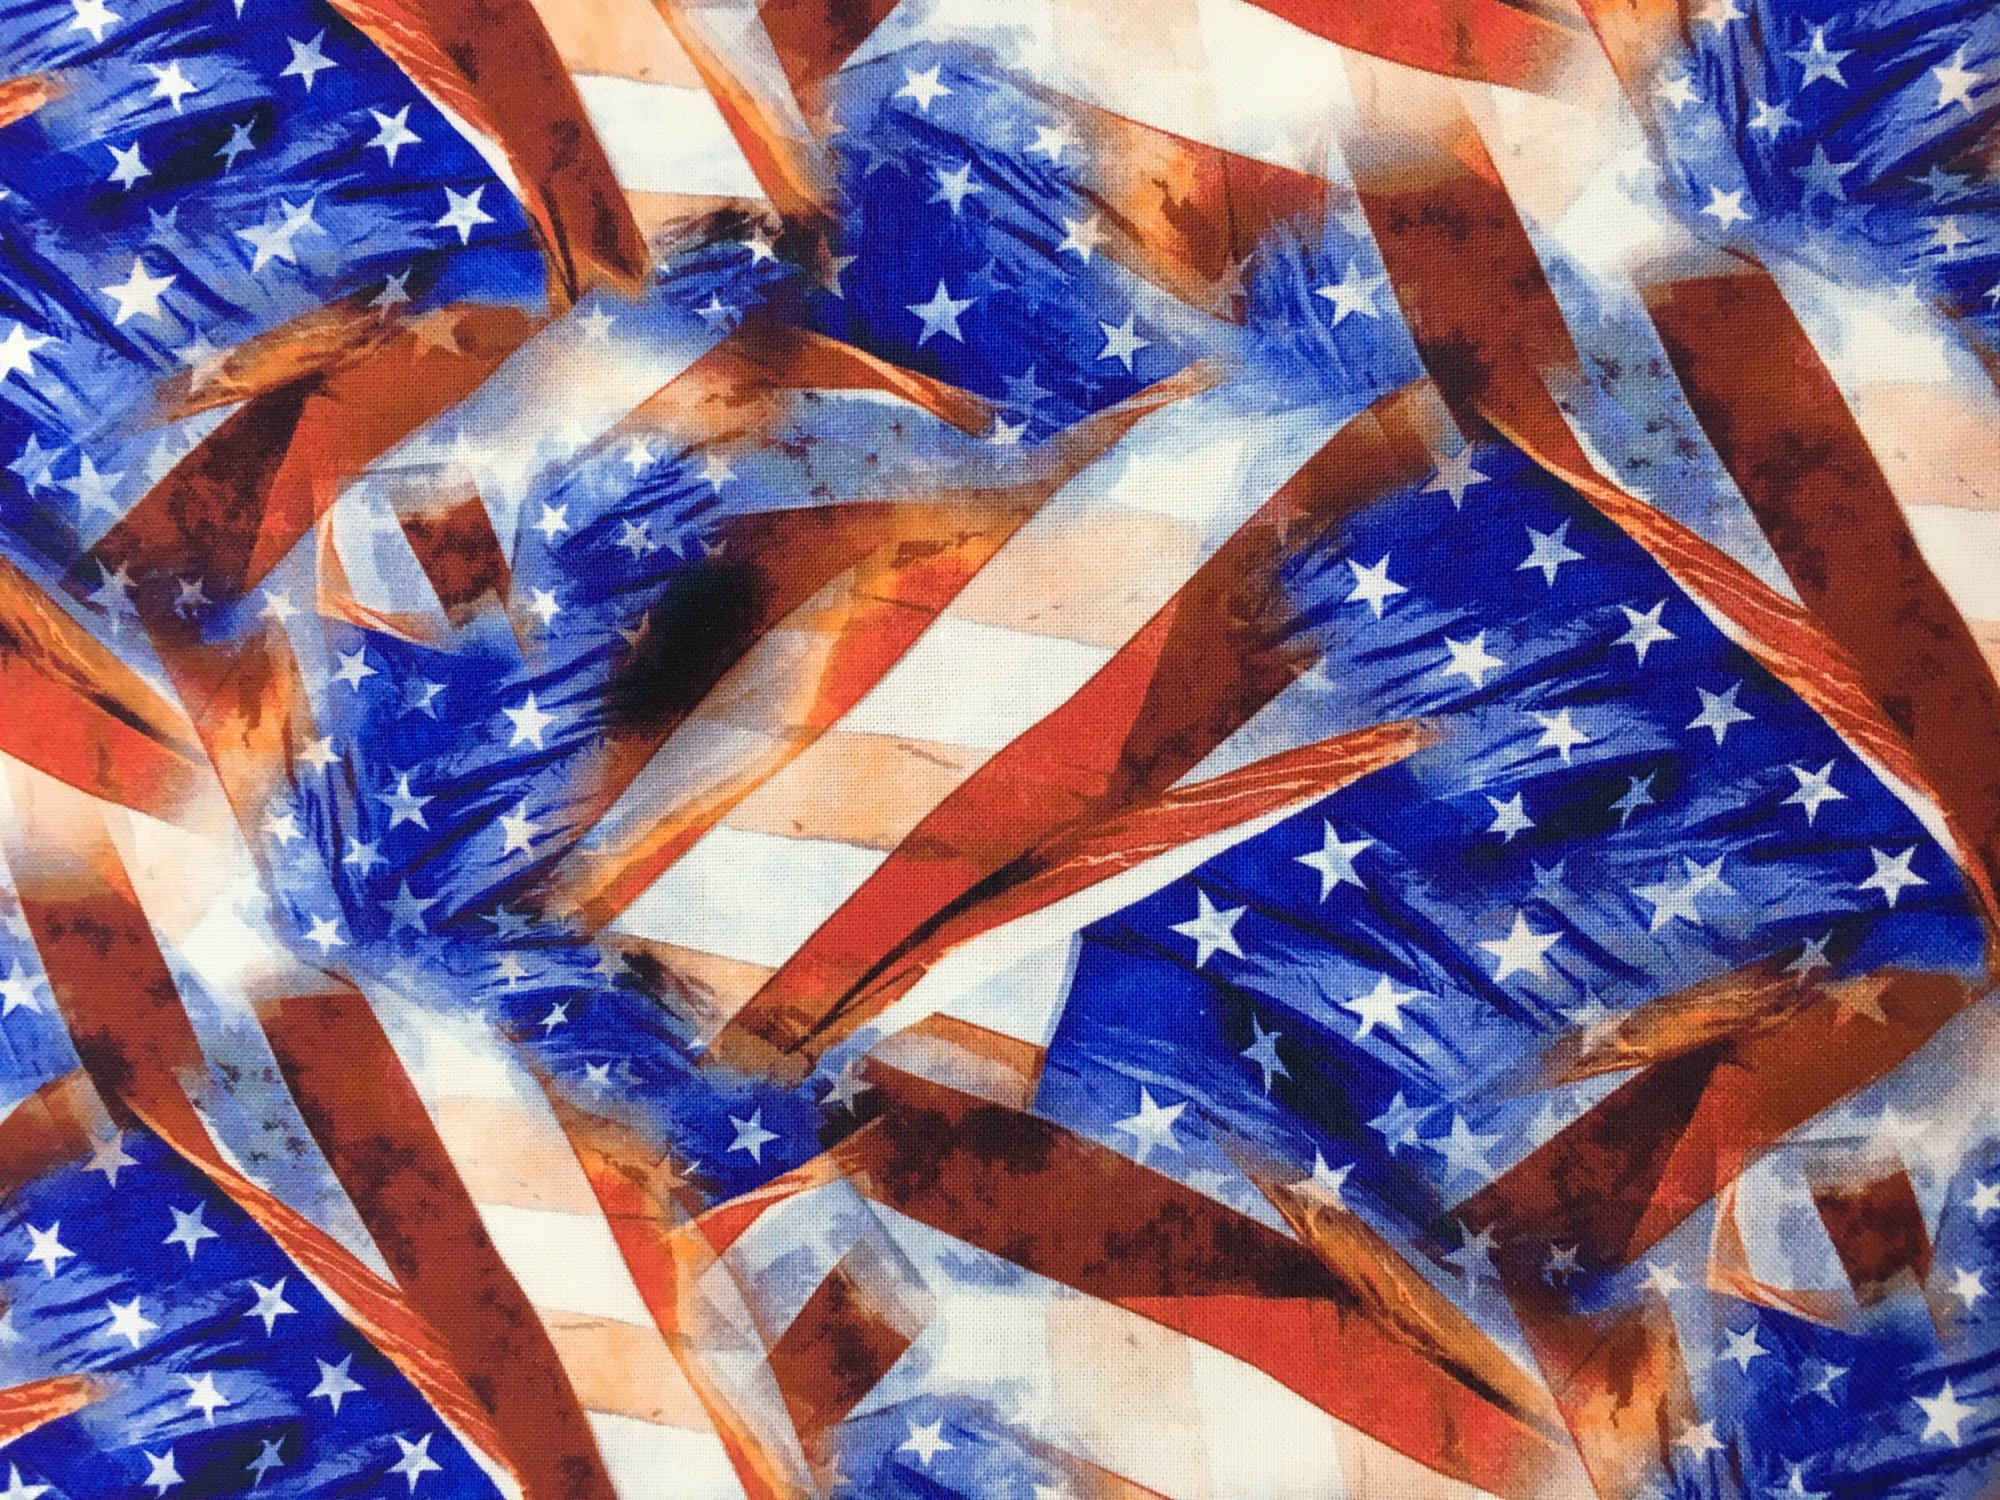 Patriotic Print 44/45 Flag all Directions